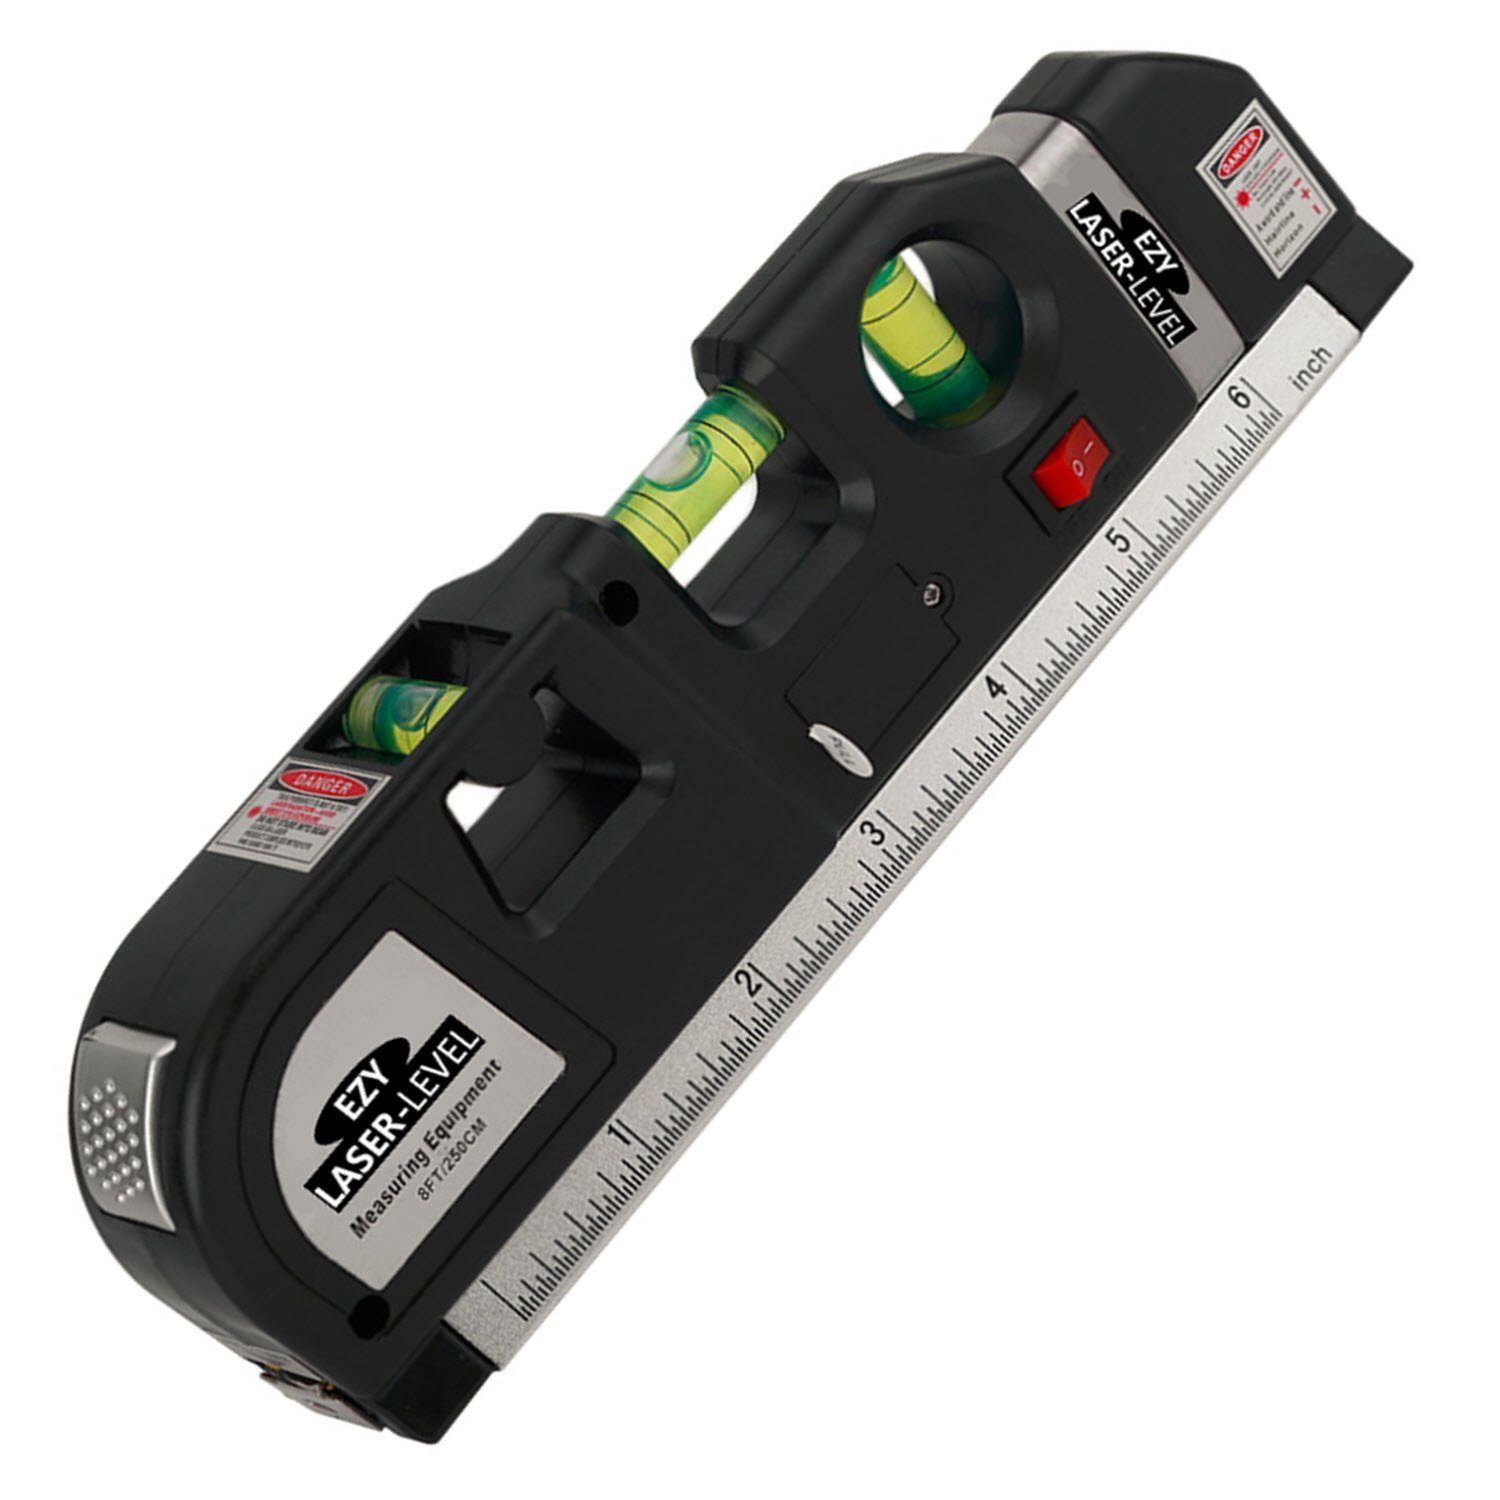 Laser Level Measurement Tool